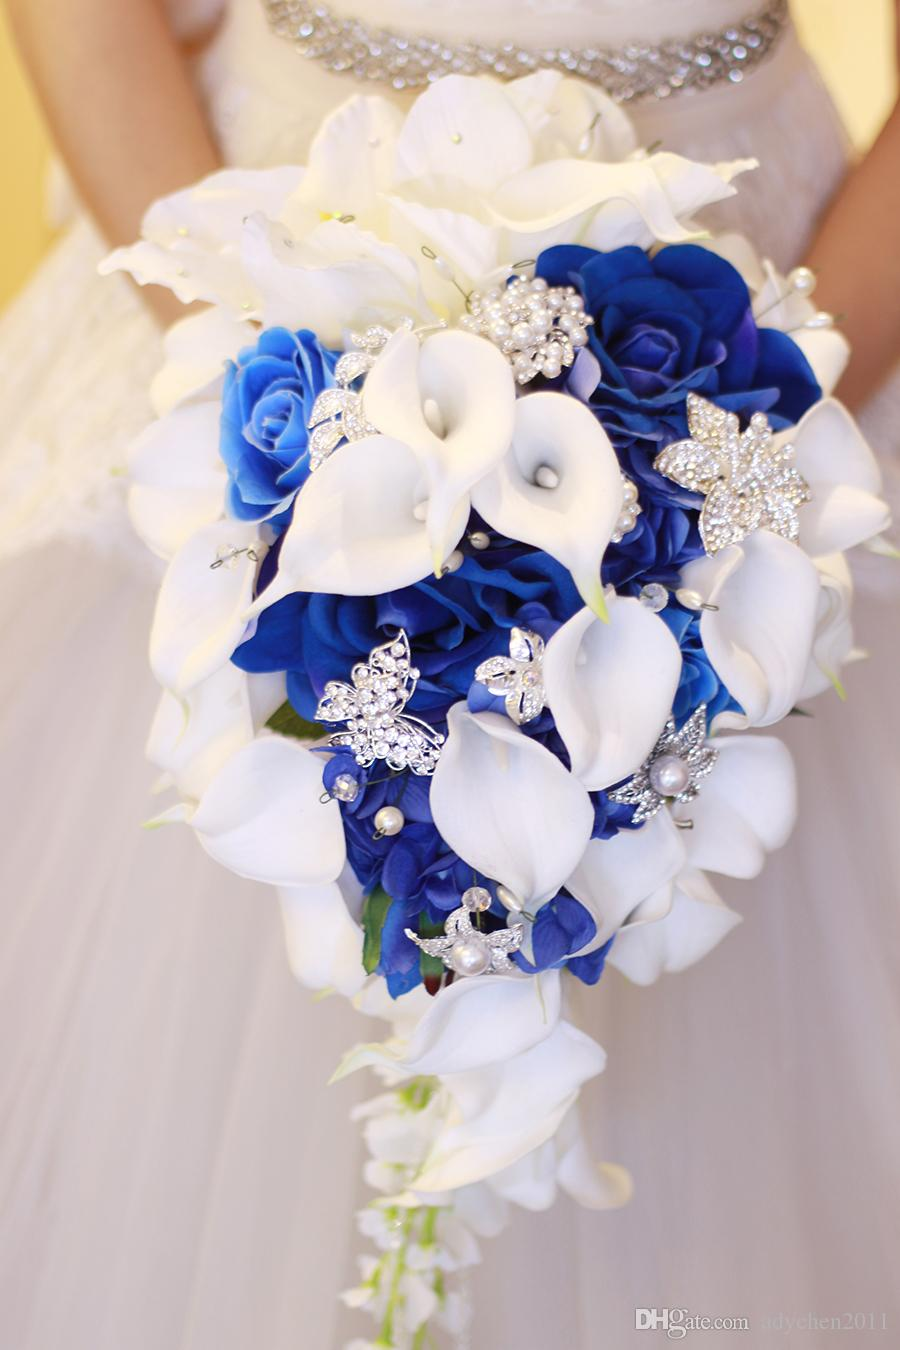 wedding bouquets royal blue flowers waterfall real touch lily beads  crystals bling roses satin bridal bouquet colors purple yellow fuchsia  satin